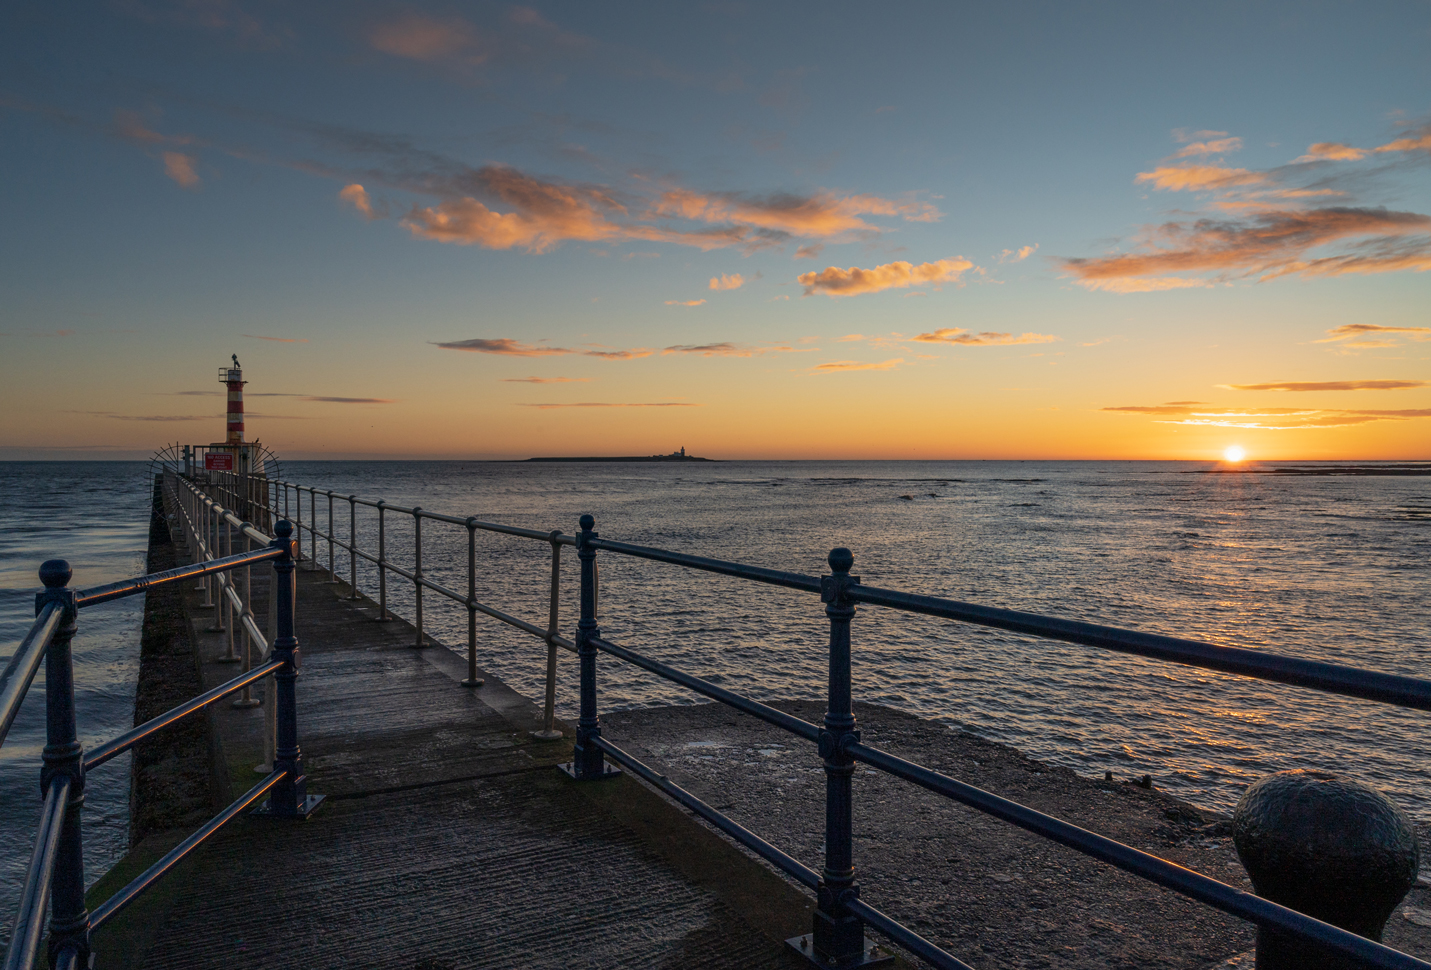 Sunrise from Amble Pier in Northumberland.